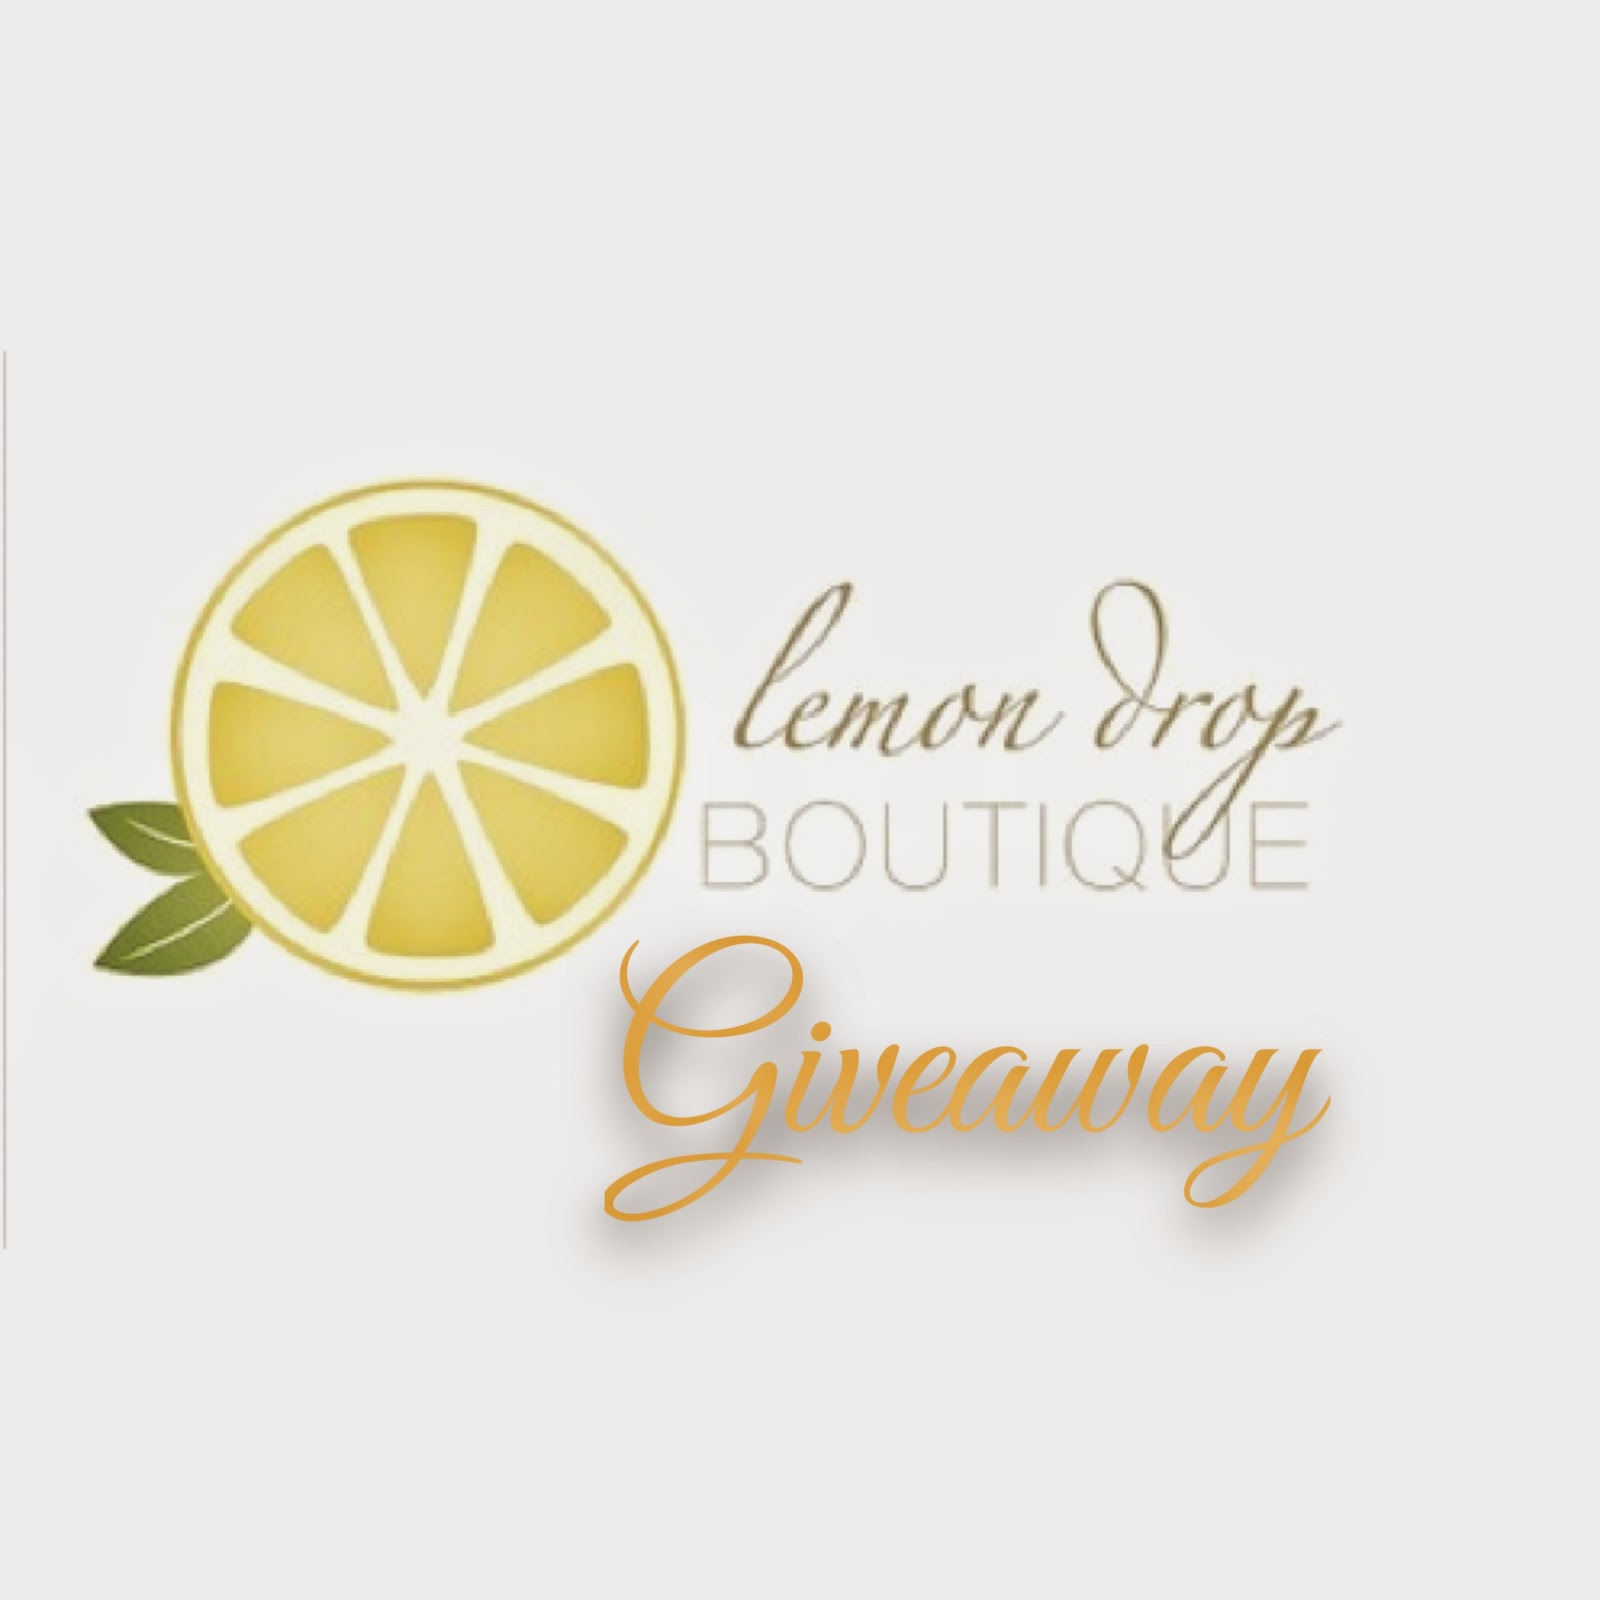 freebie friday, giveaway, lemon drop boutique, free jewelry, sweepstakes, contest, freebie